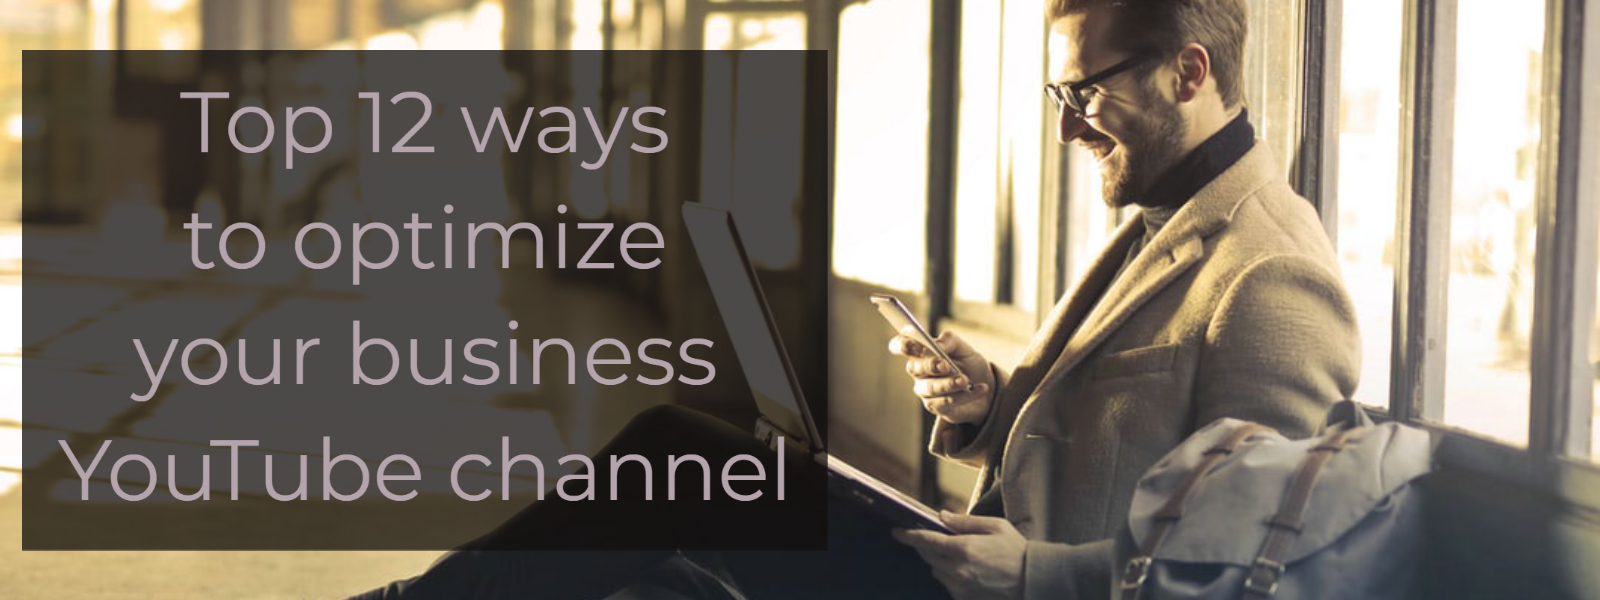 Top 12 ways to optimize your business YouTube channel